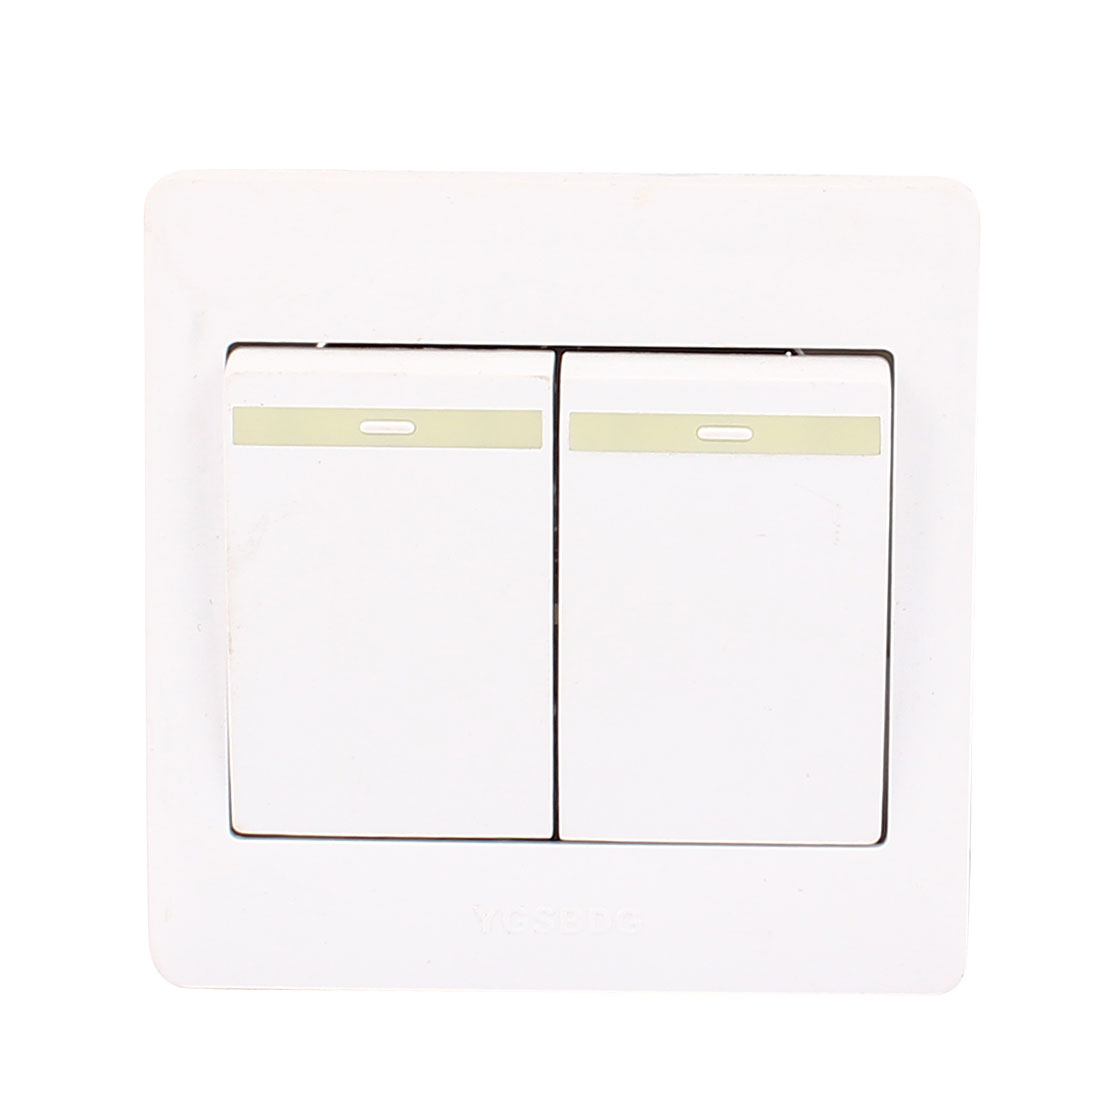 AC 250V 10A 2 Gang 1 Way On/Off 86Type Plastic Housing Wall Light Switch